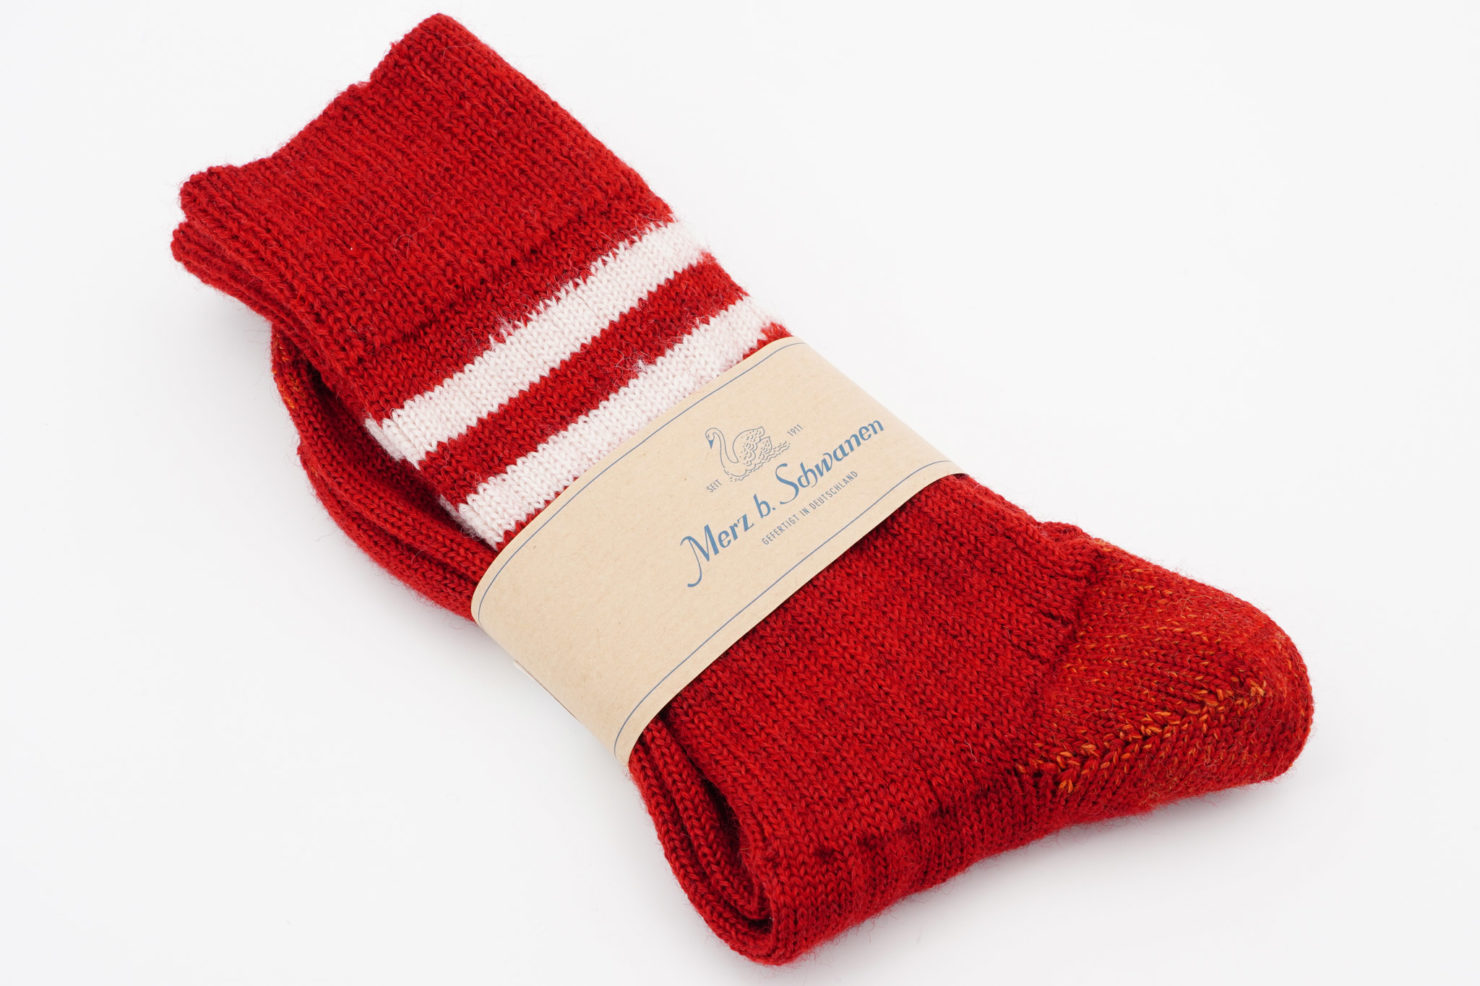 RETRO SPORT SOCKS STRIPED RED/NATURE - MERZ B. SCHWANEN